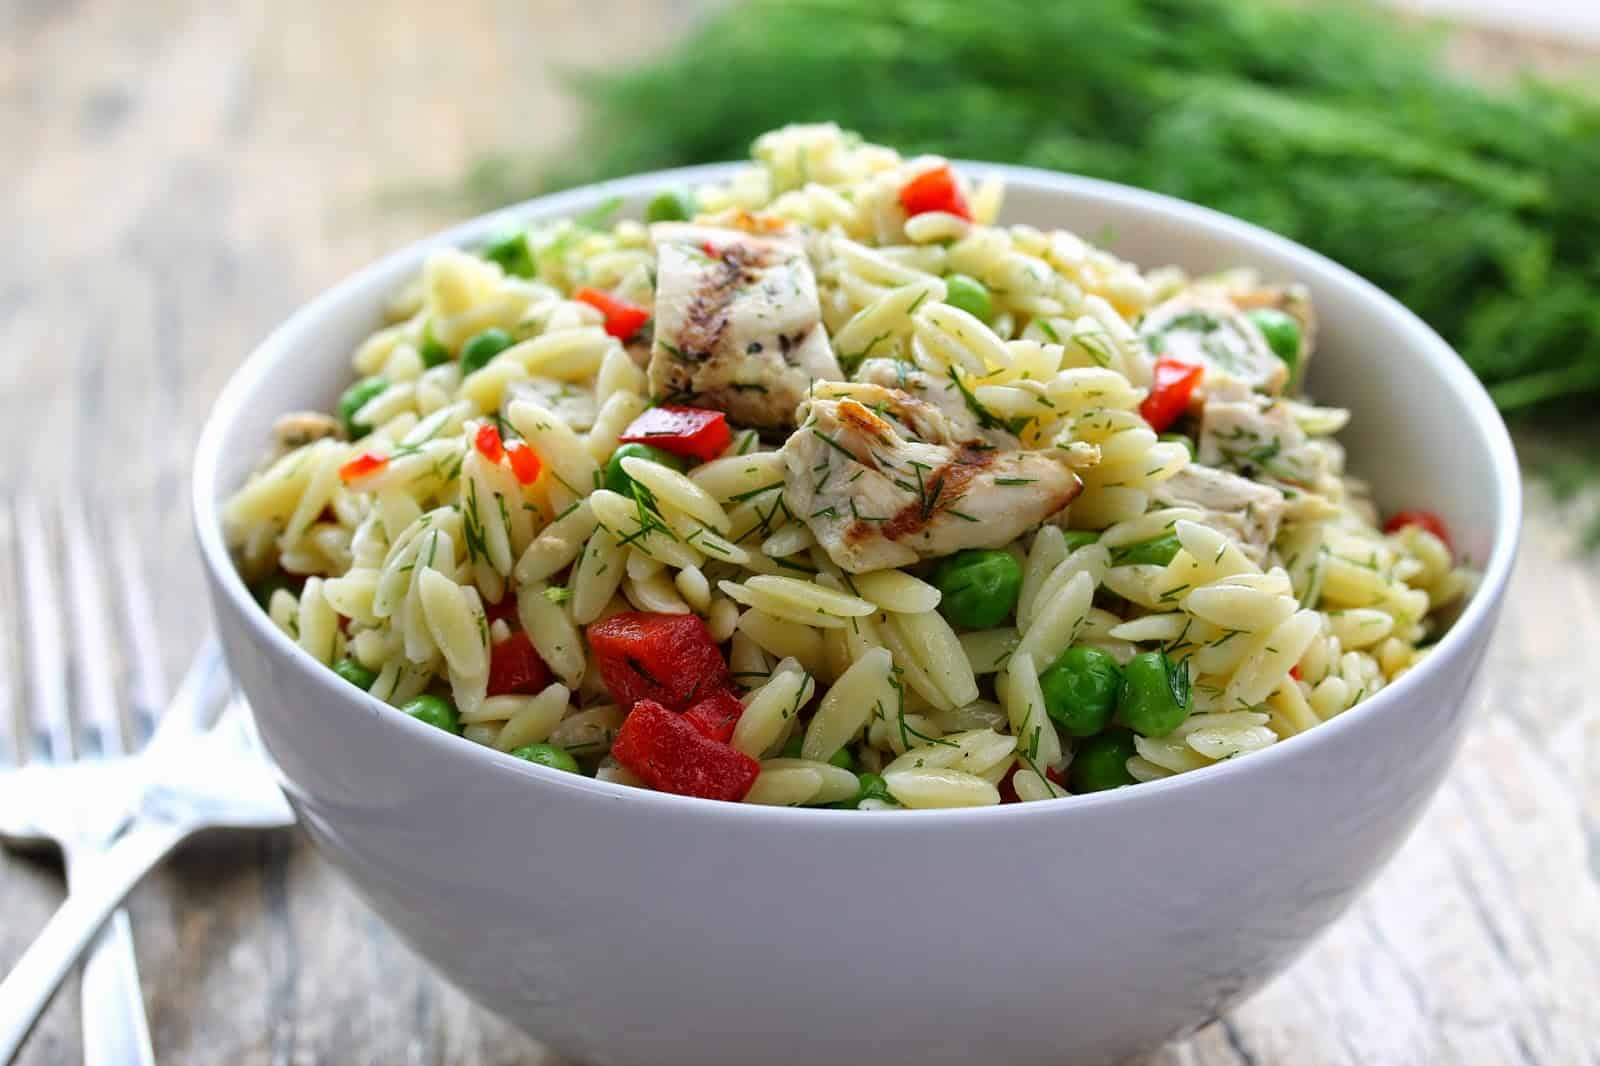 Lemon-Dill Chicken and Orzo Pasta Salad in a white bowl.